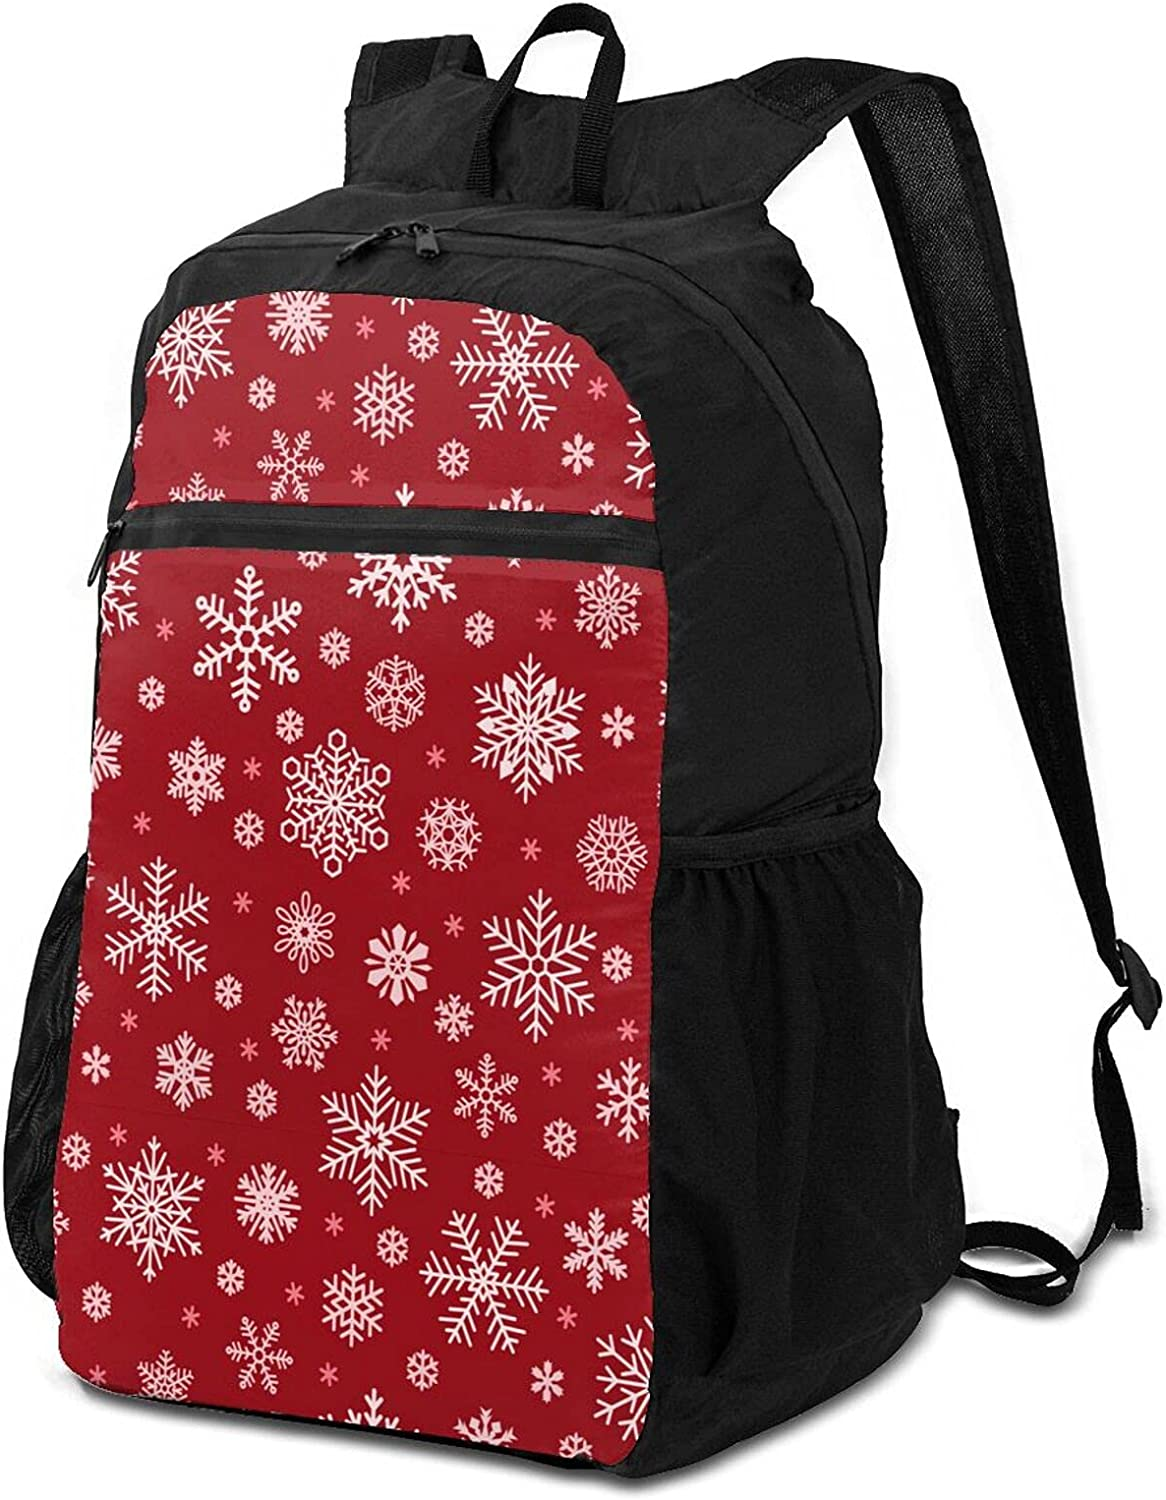 Christmas Regular store Snowflake Star in Packable Credence Lightweight Winter Backpack